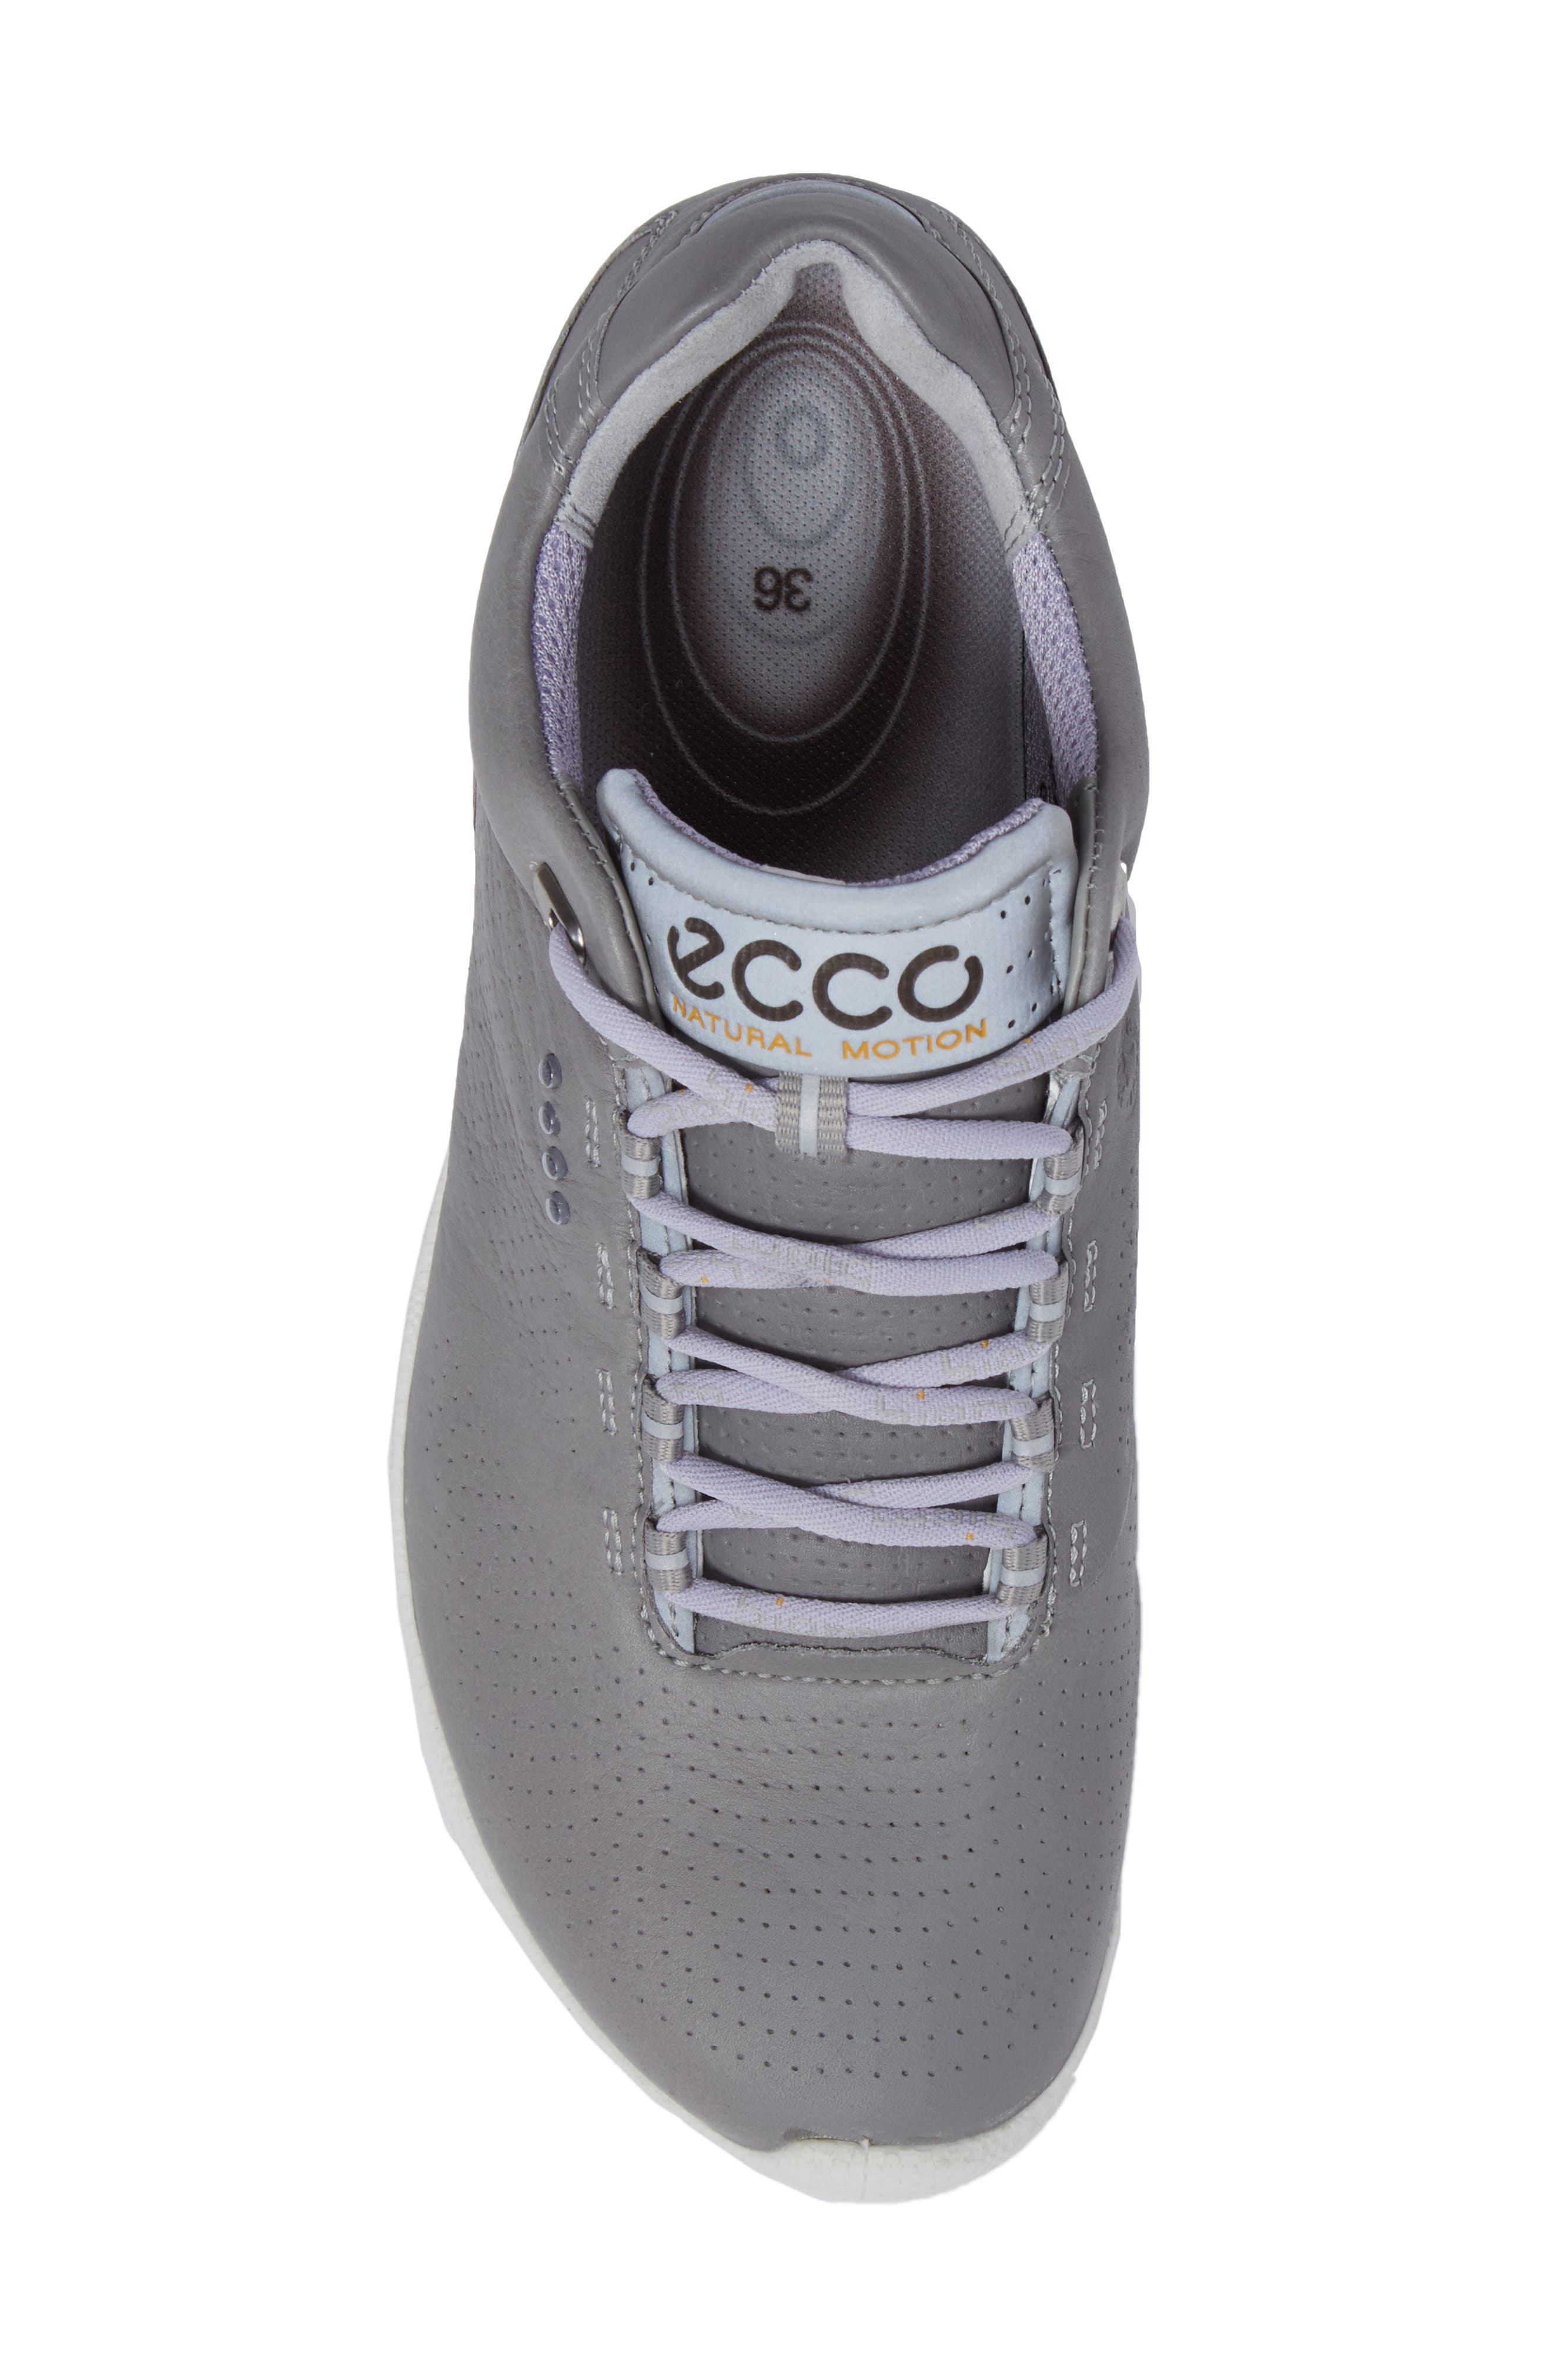 ECCO,                             BIOM 2 Hybrid Water-Repellent Golf Shoe,                             Alternate thumbnail 5, color,                             020